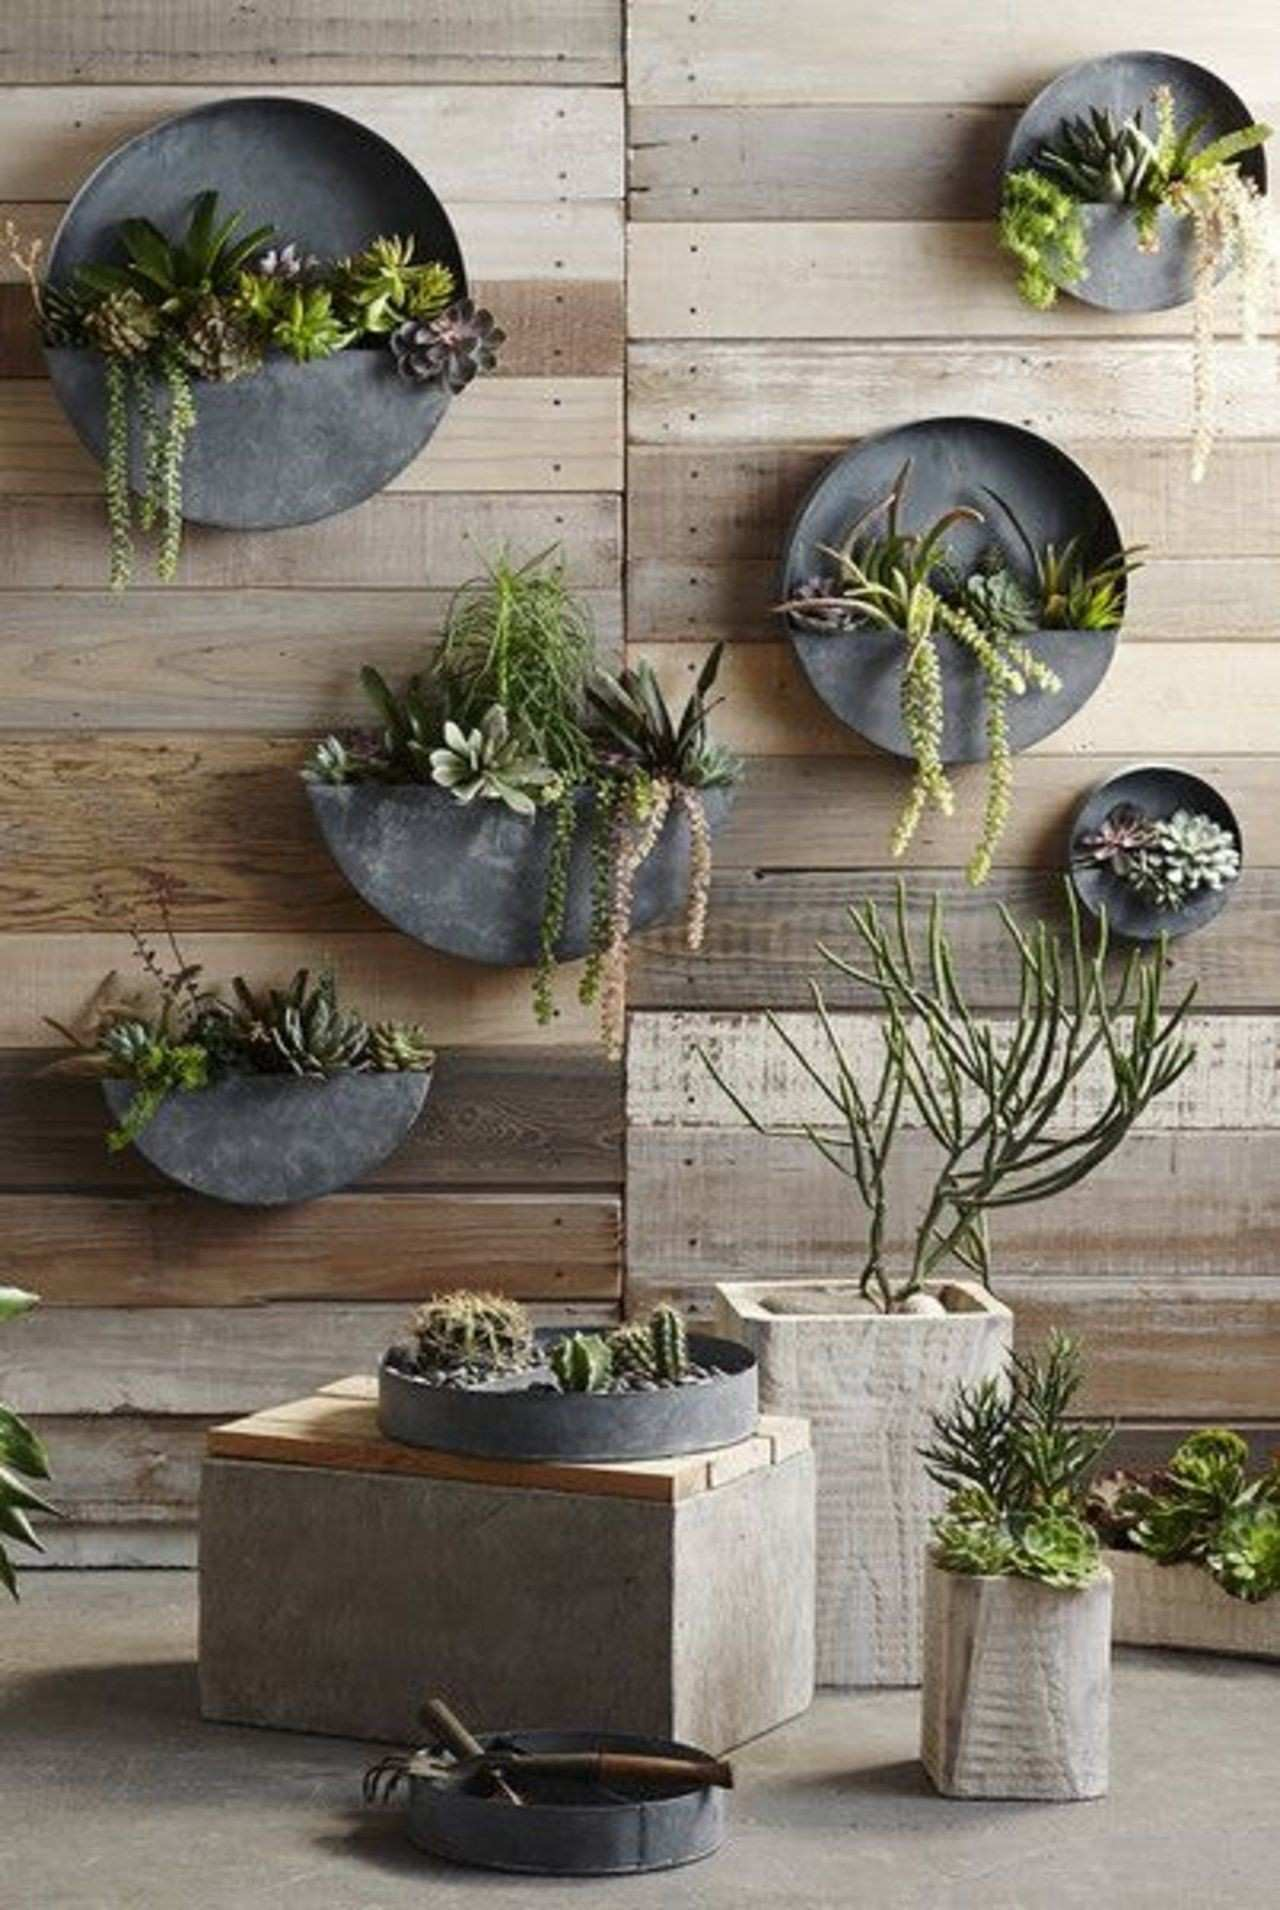 Breathe New Life Into Your Space With a Living Wall